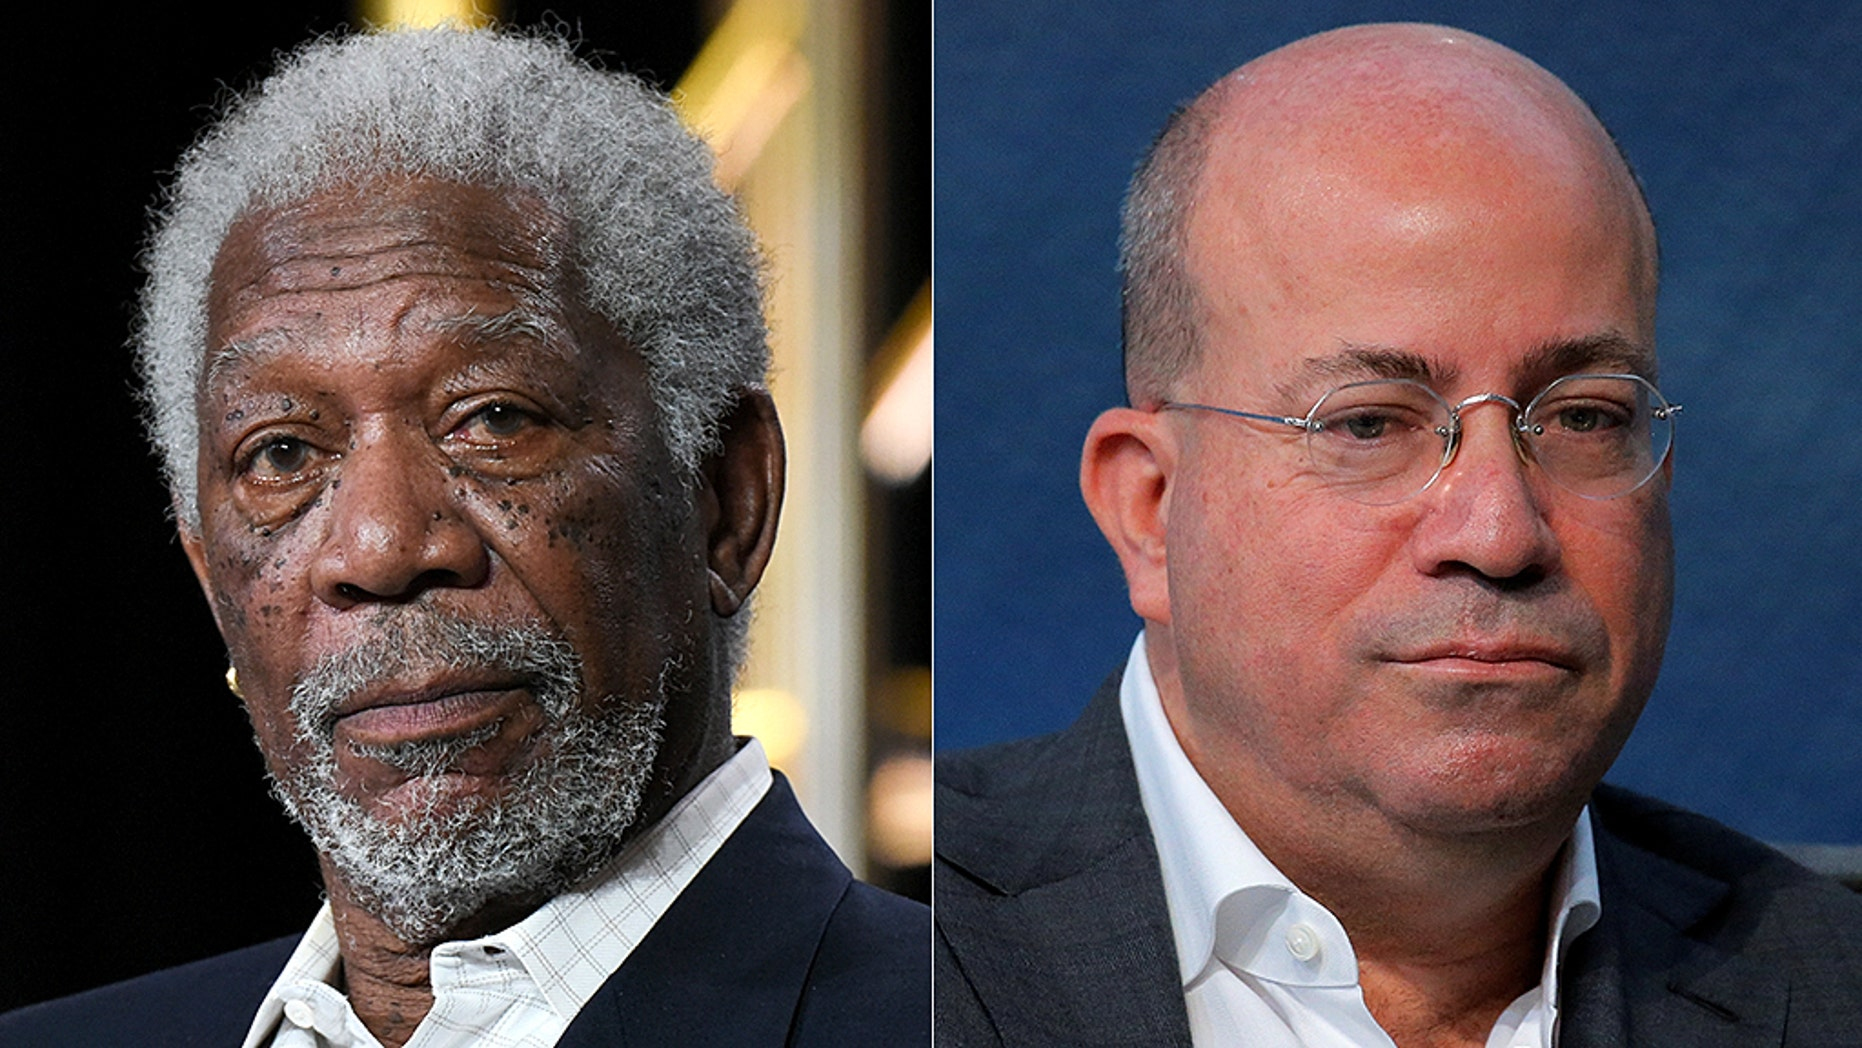 """An attorney representing Morgan Freeman wants CNN boss Jeff Zucker to apologize and retract a """"scandal-mongering hit piece"""" published about his client."""